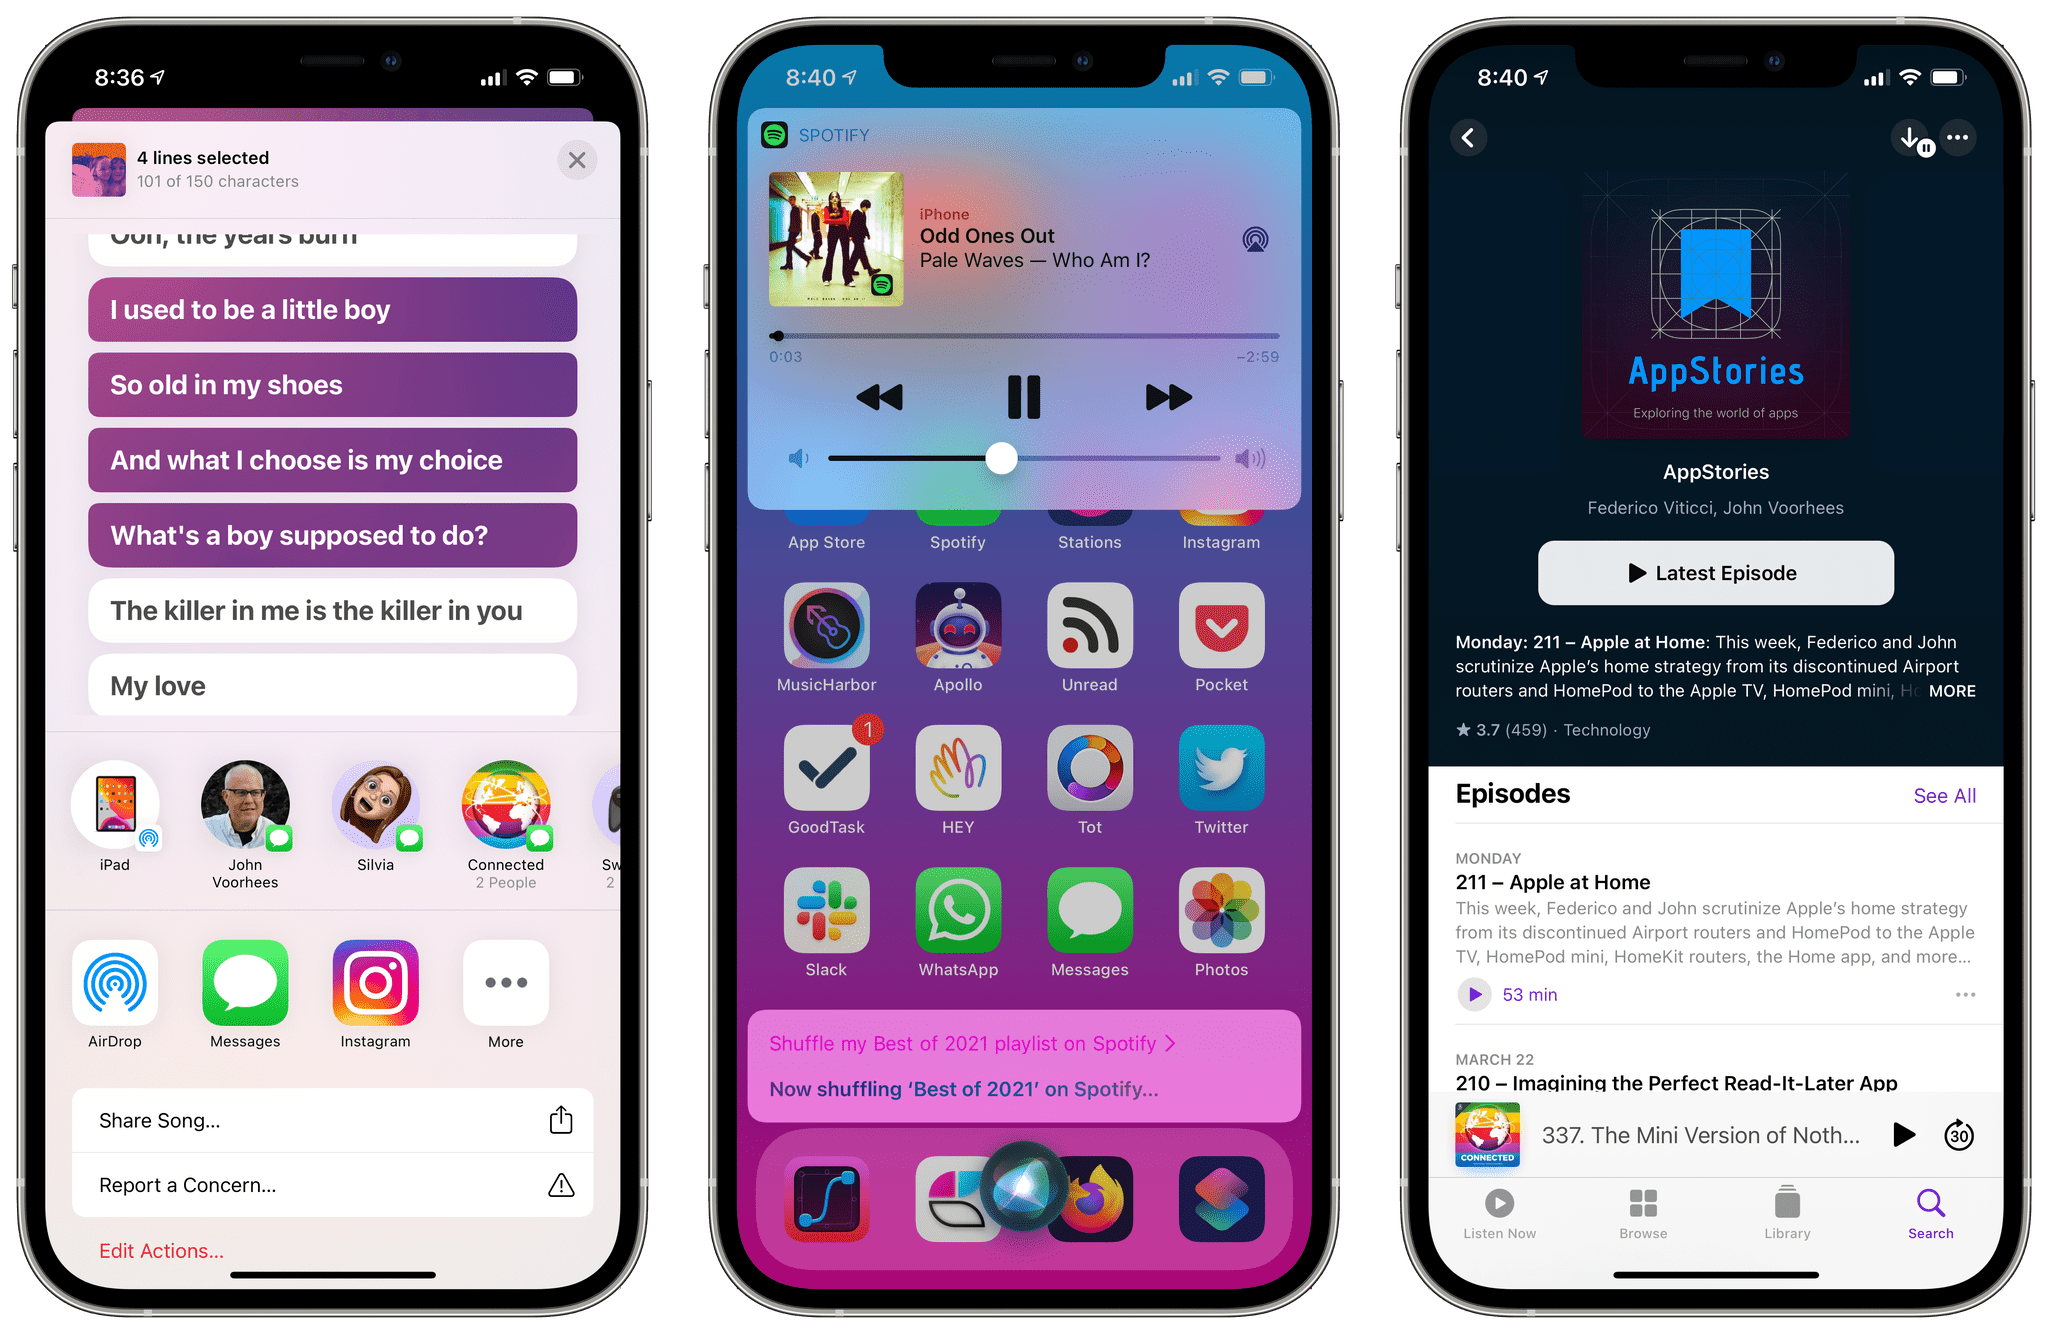 Shareable lyrics, third-party music services for Siri, and the refreshed Podcasts app in iOS 14.5.